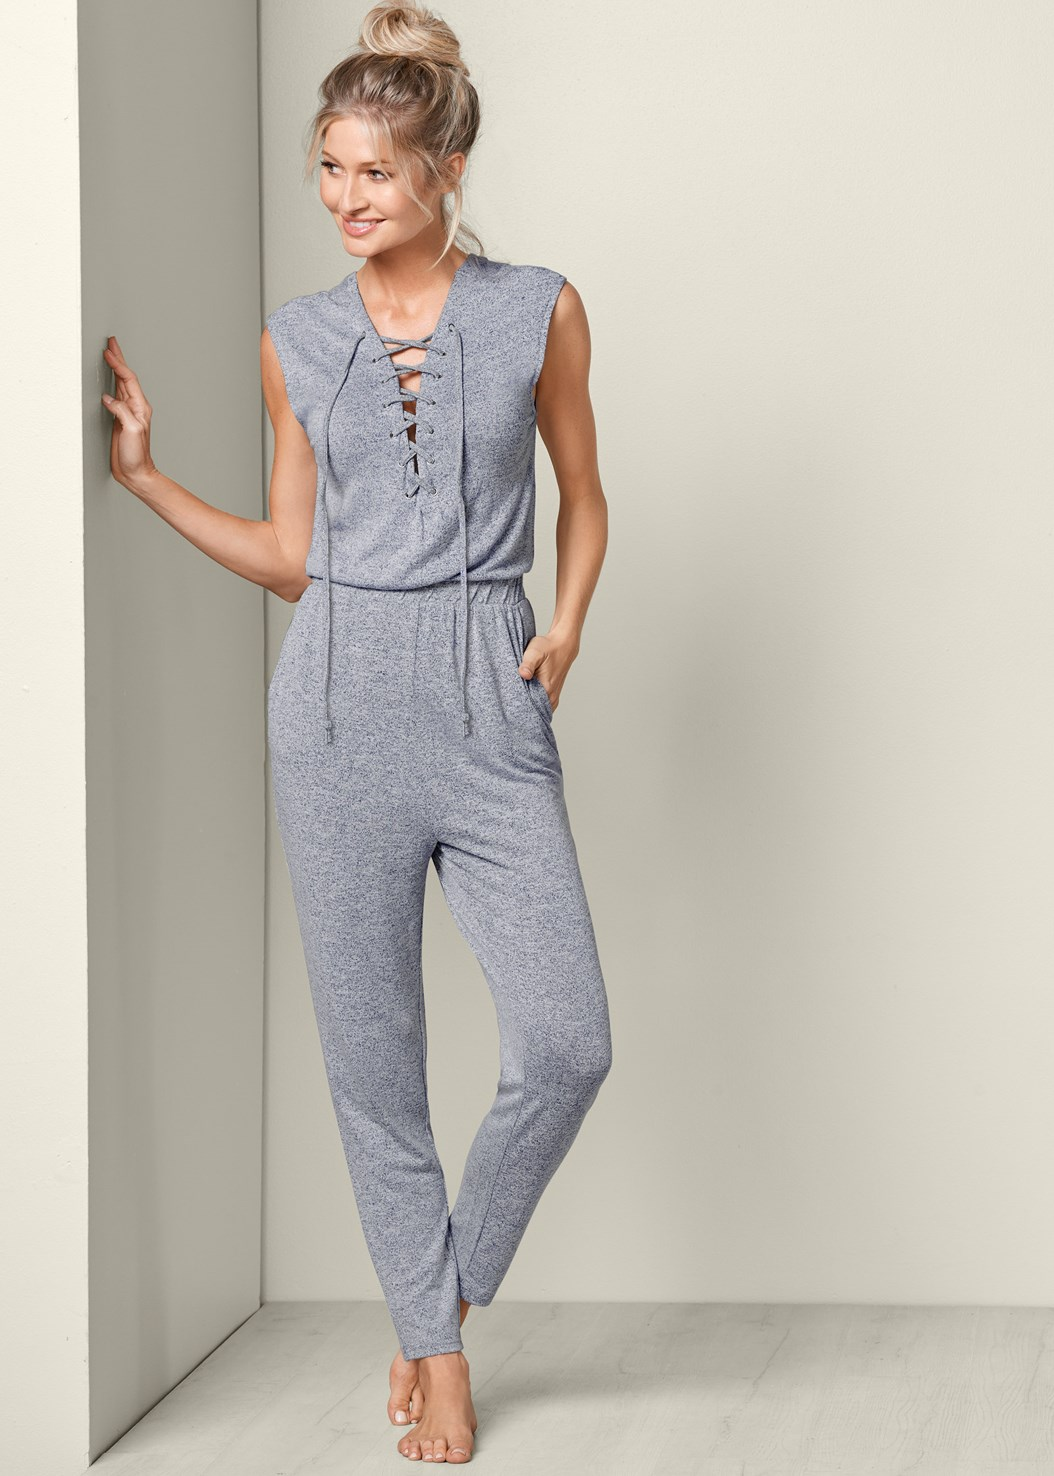 Lace Front Jumpsuit,Kissable Strappy Push Up